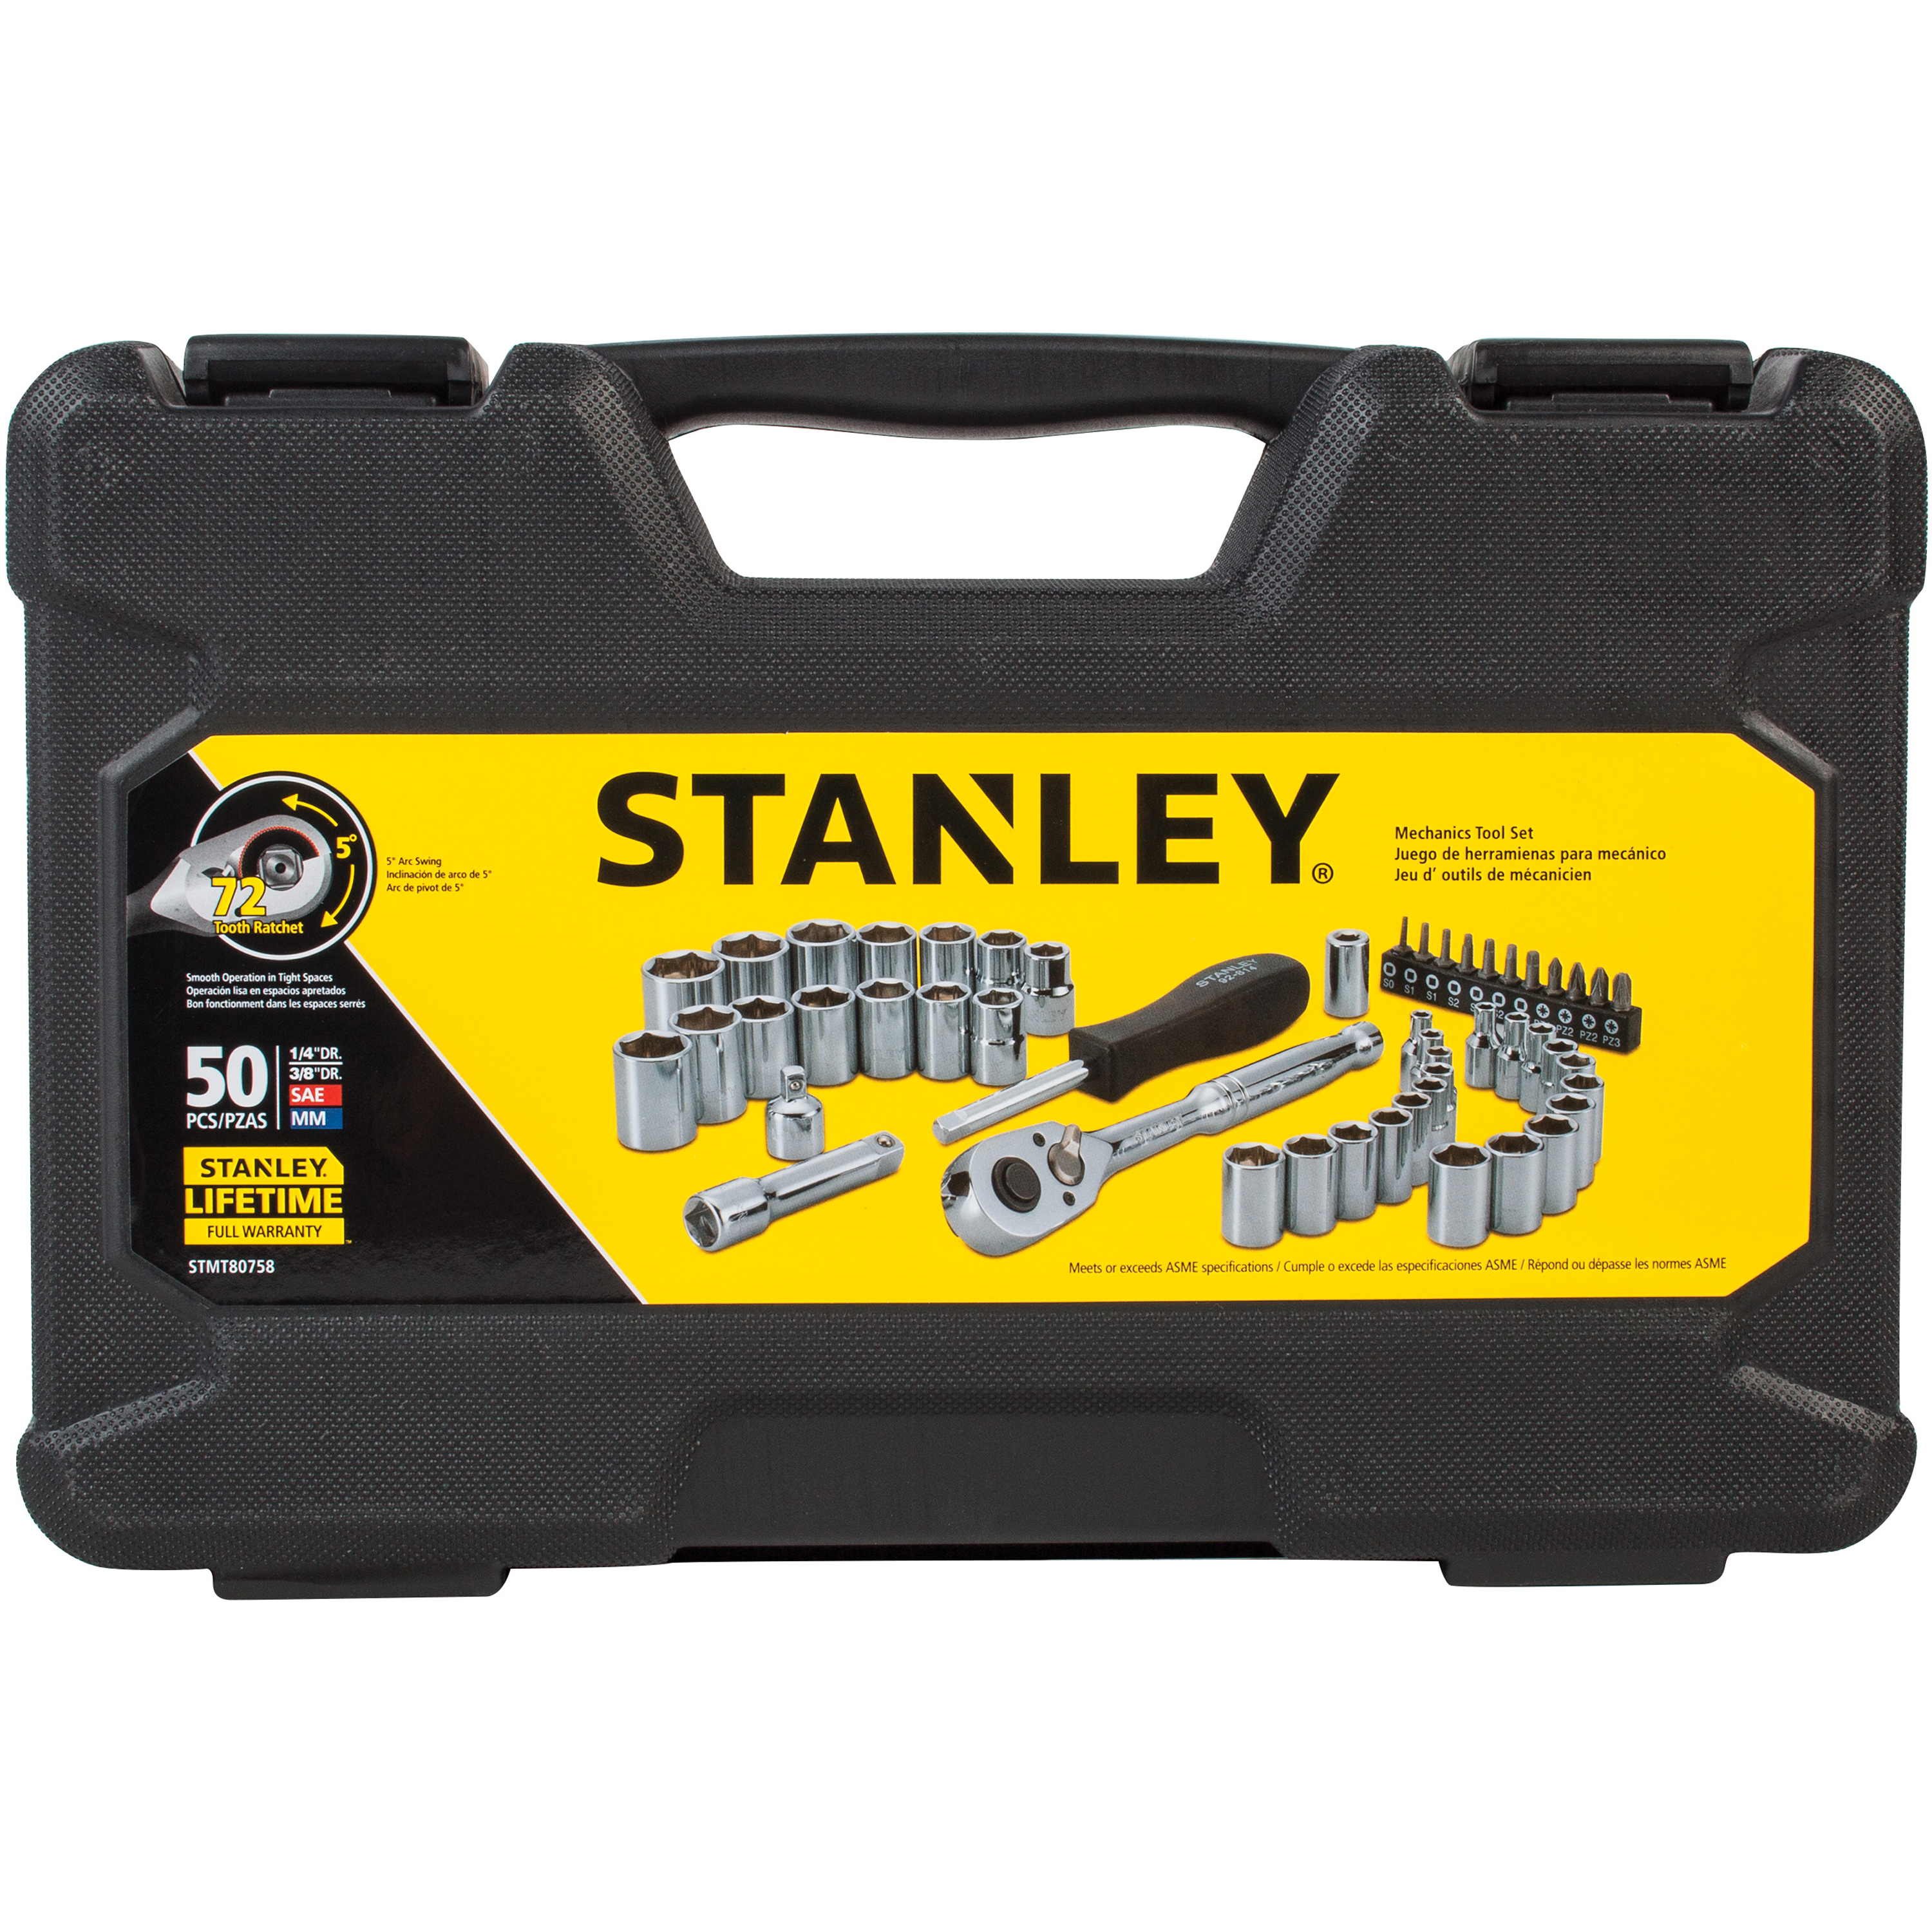 STANLEY 50-Piece Mechanics Tool Set | STMT80758